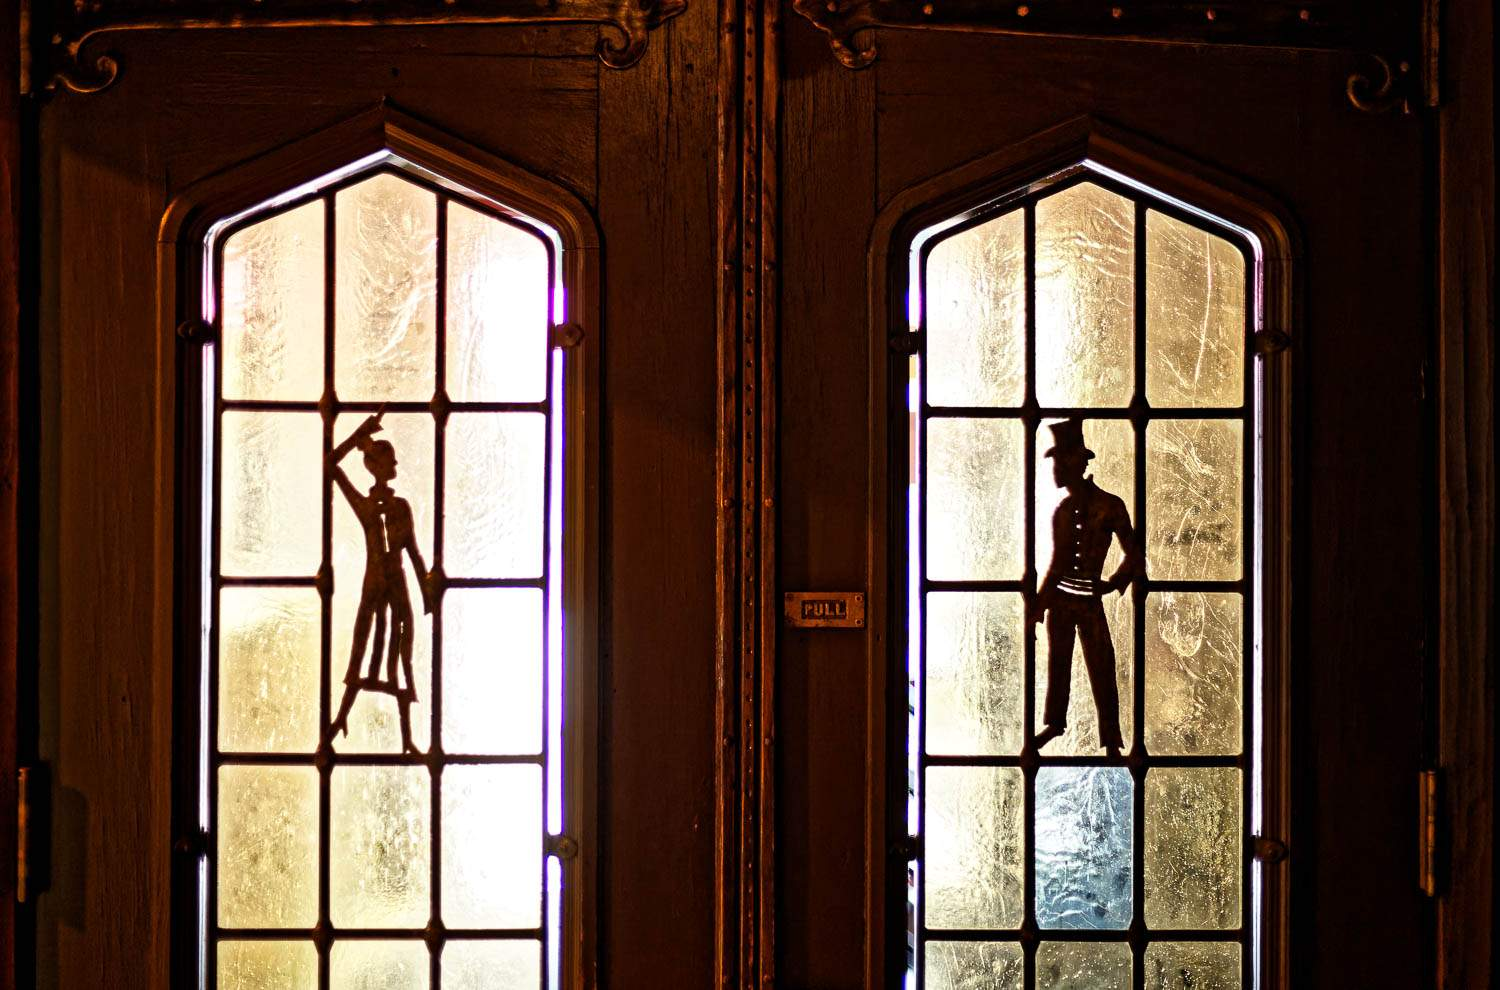 Silhouette of characters on the glass door